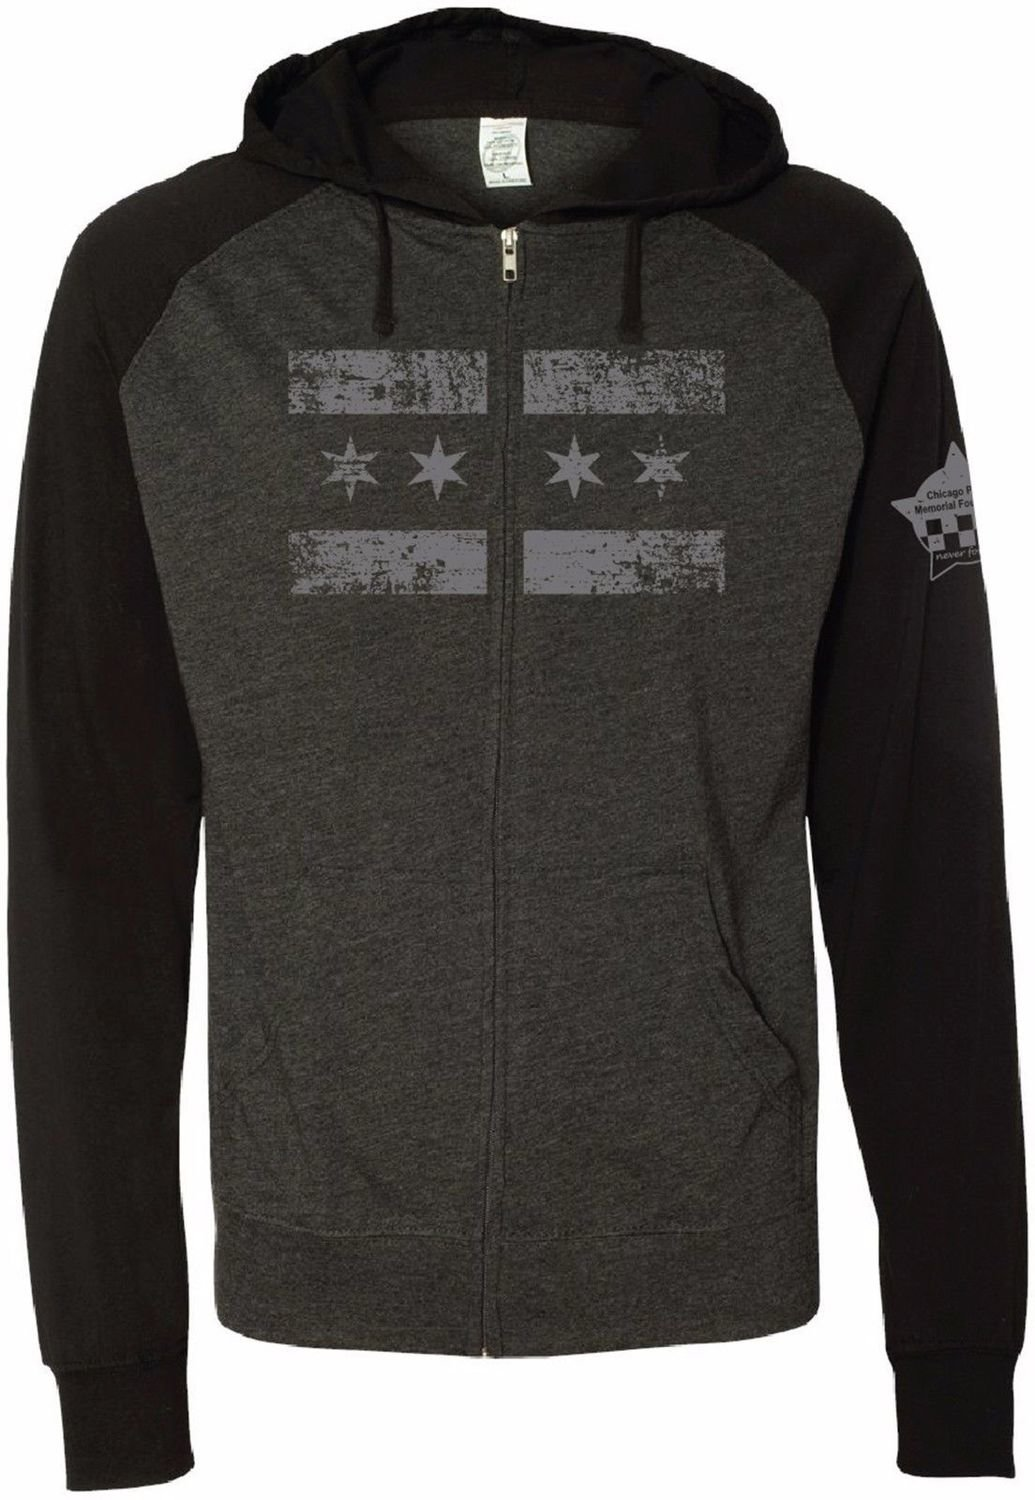 CPD Memorial Beach Hoodie Full Zip Lightweight Black/Grey Chicago Flag